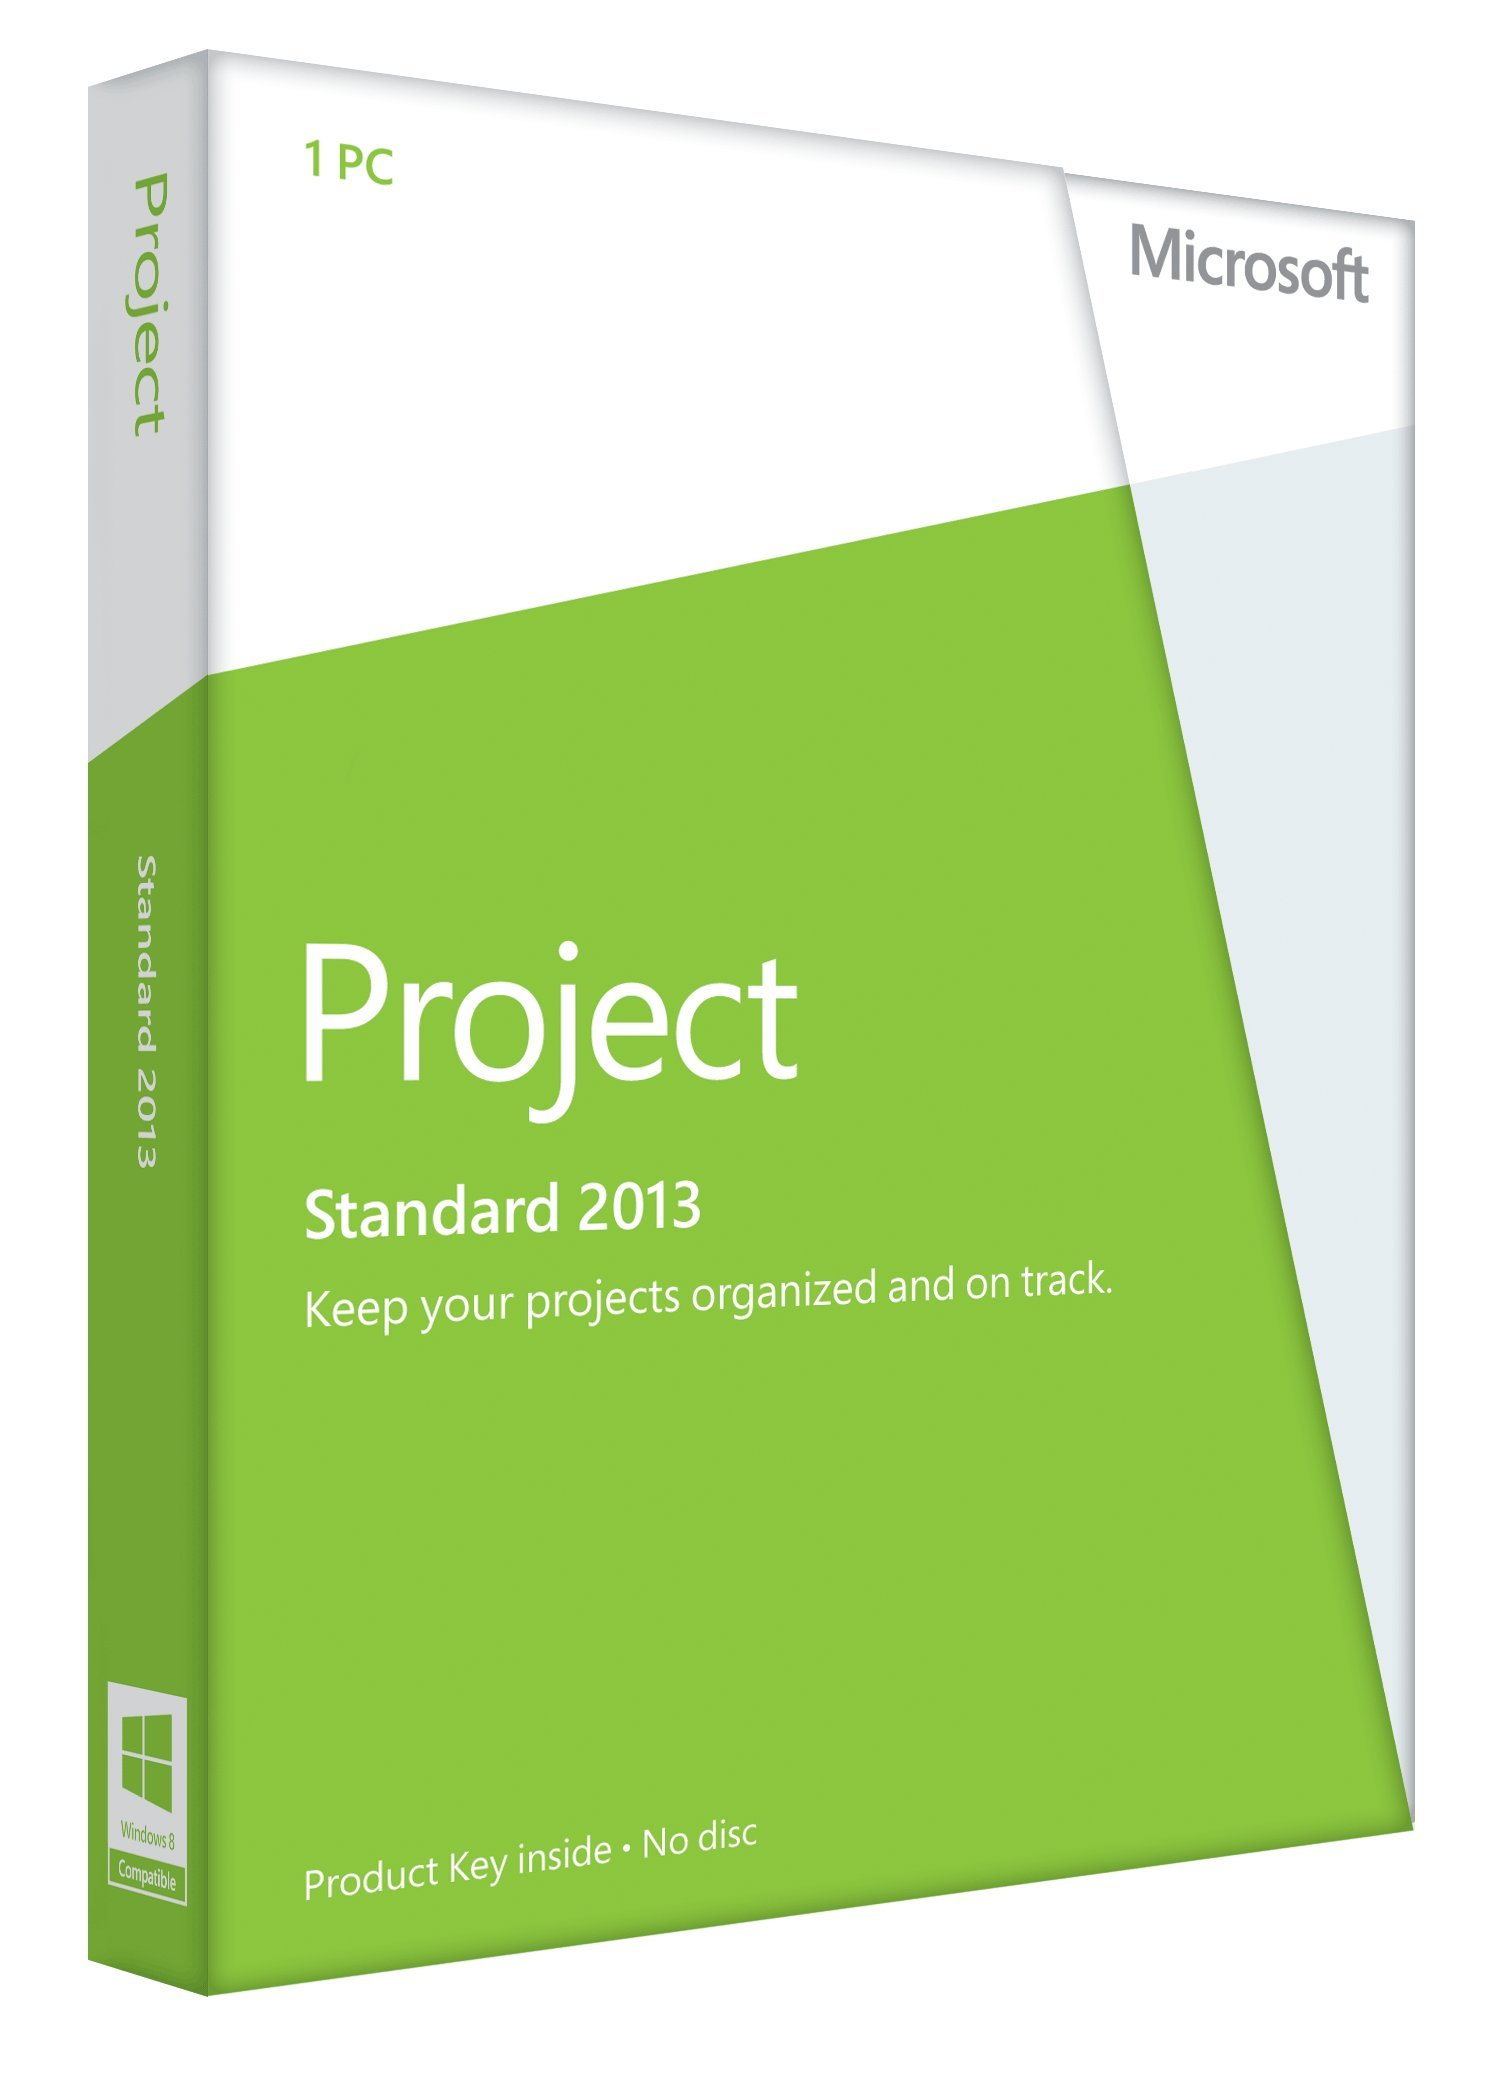 microsoft project standard 2010 32 bit free download